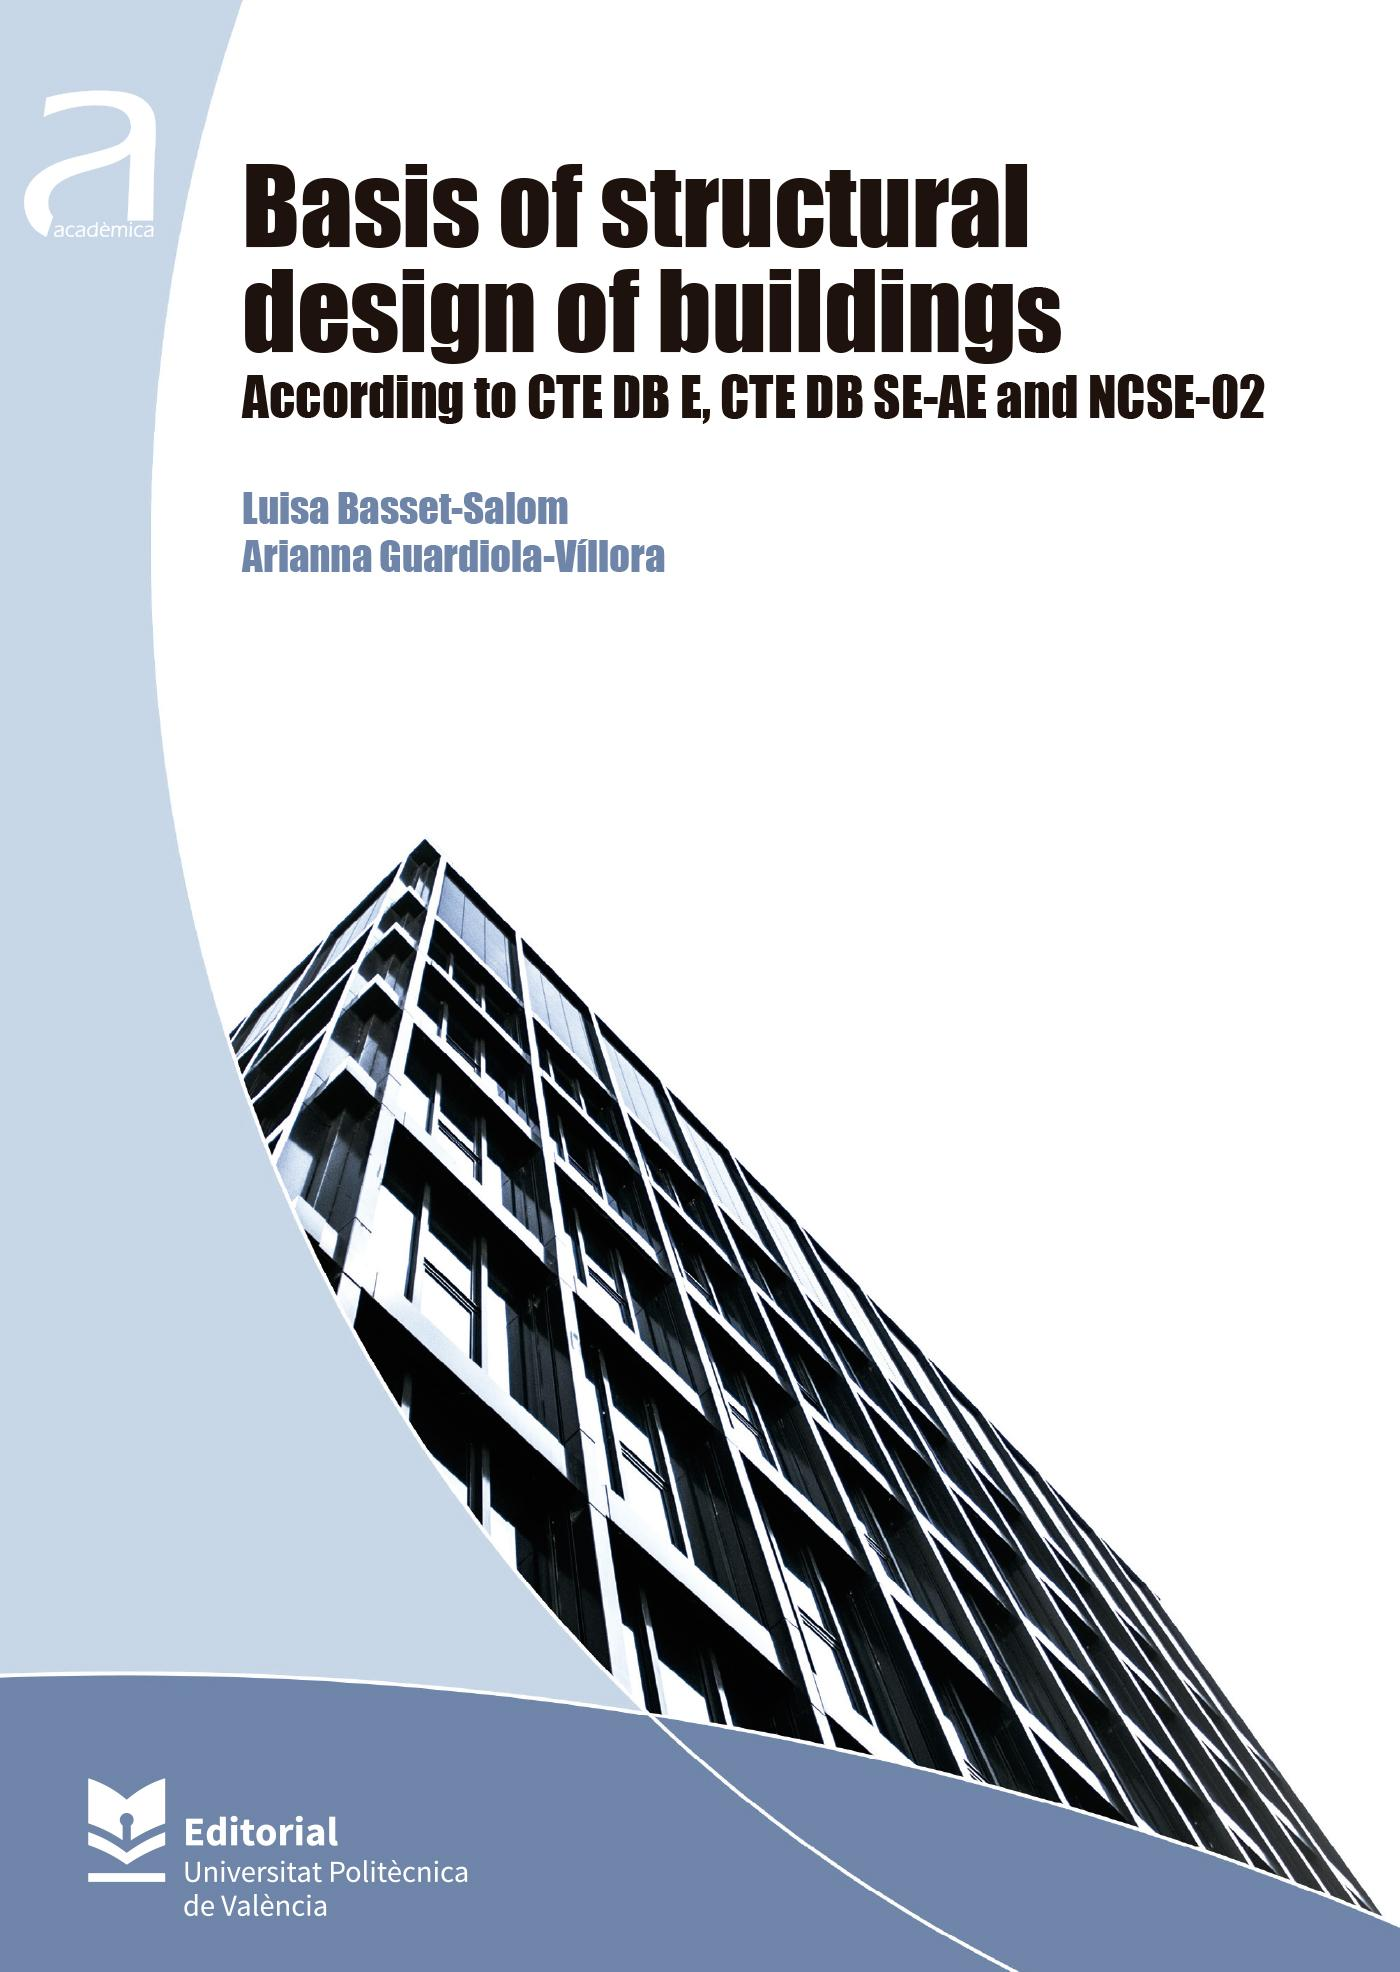 BASIS OF STRUCTURAL DESIGN OF BUILDING. ACCORDING TO CTE DB E,CTE DB SE-AE AND NCSE-02